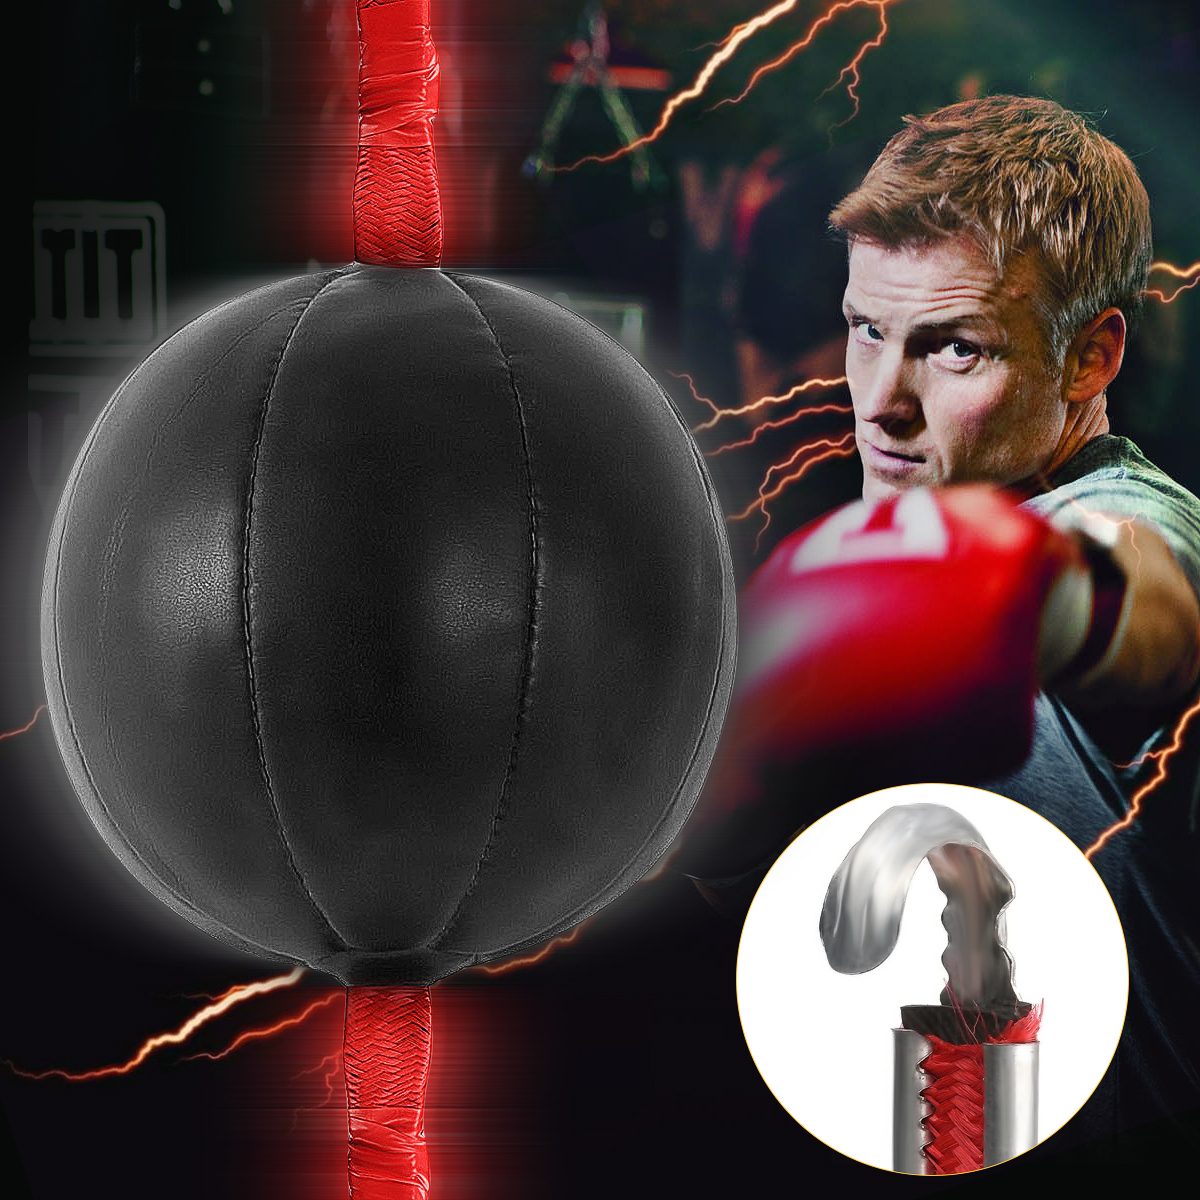 Black Speed Ball Boxing Double End MMA Boxing Training Gear speedbag Workout Punching Bag Speed Ball Bag with Strap